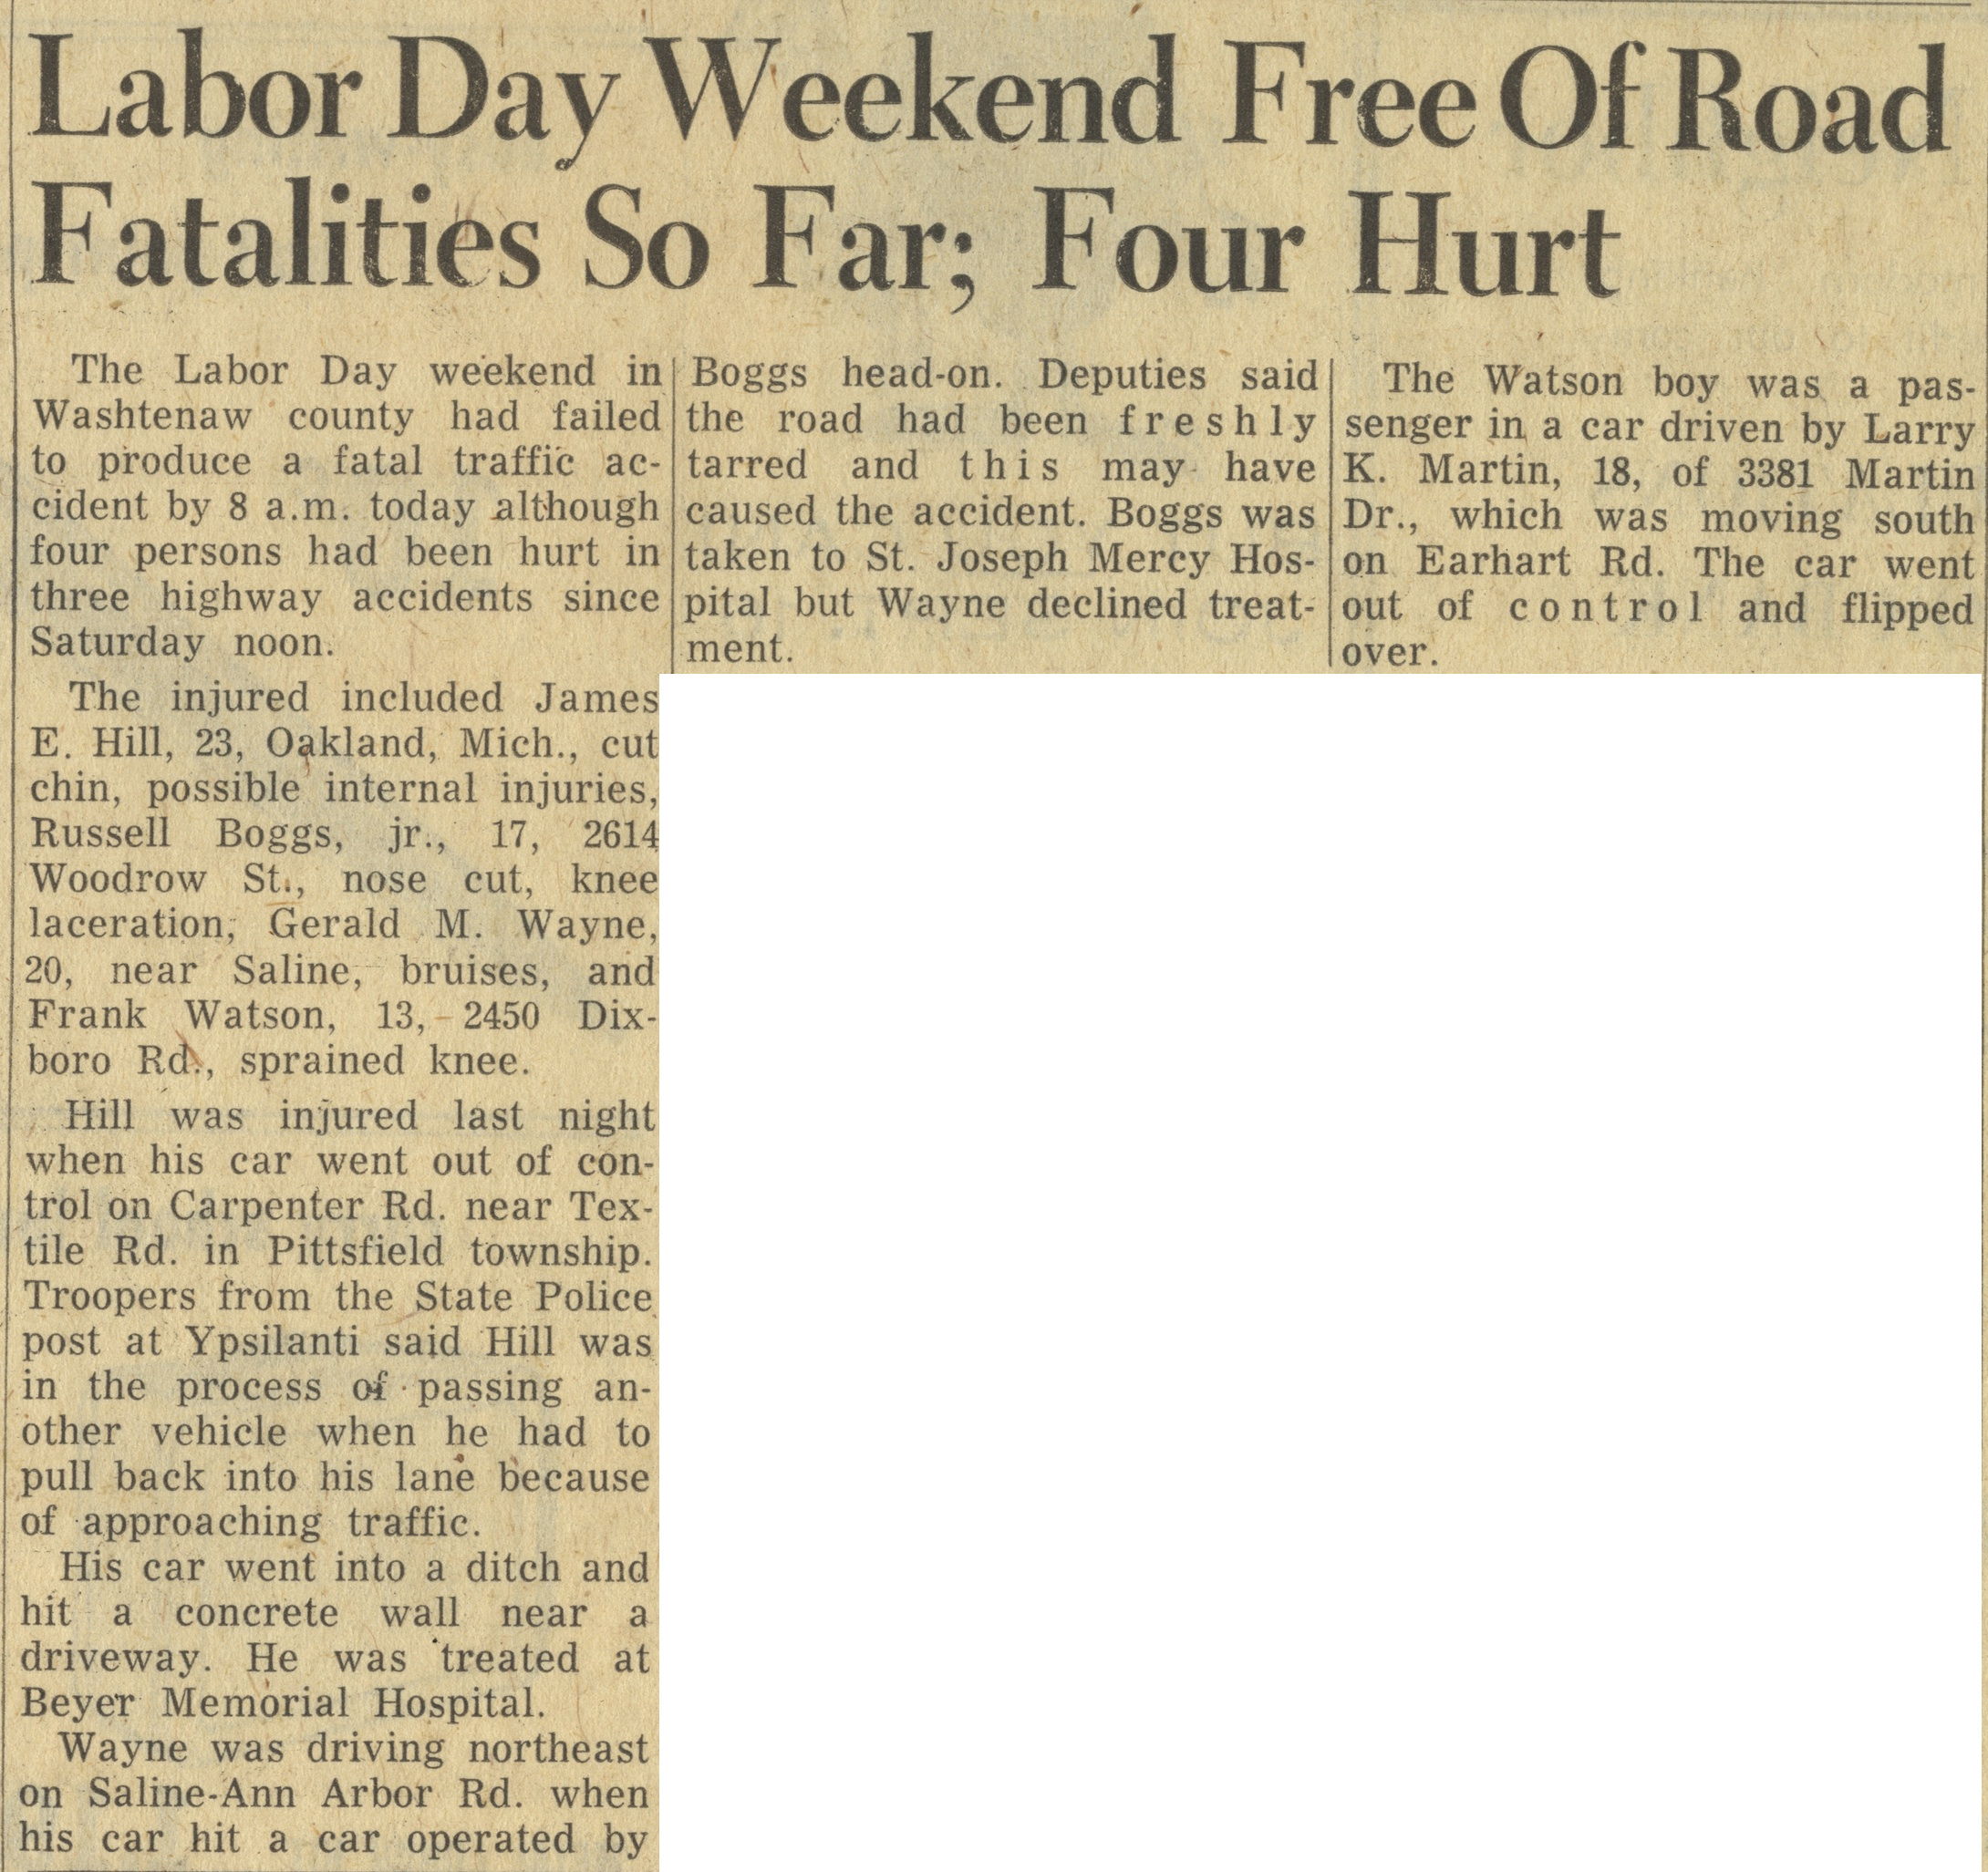 Labor Day Weekend Free Of Road Fatalities So Far image